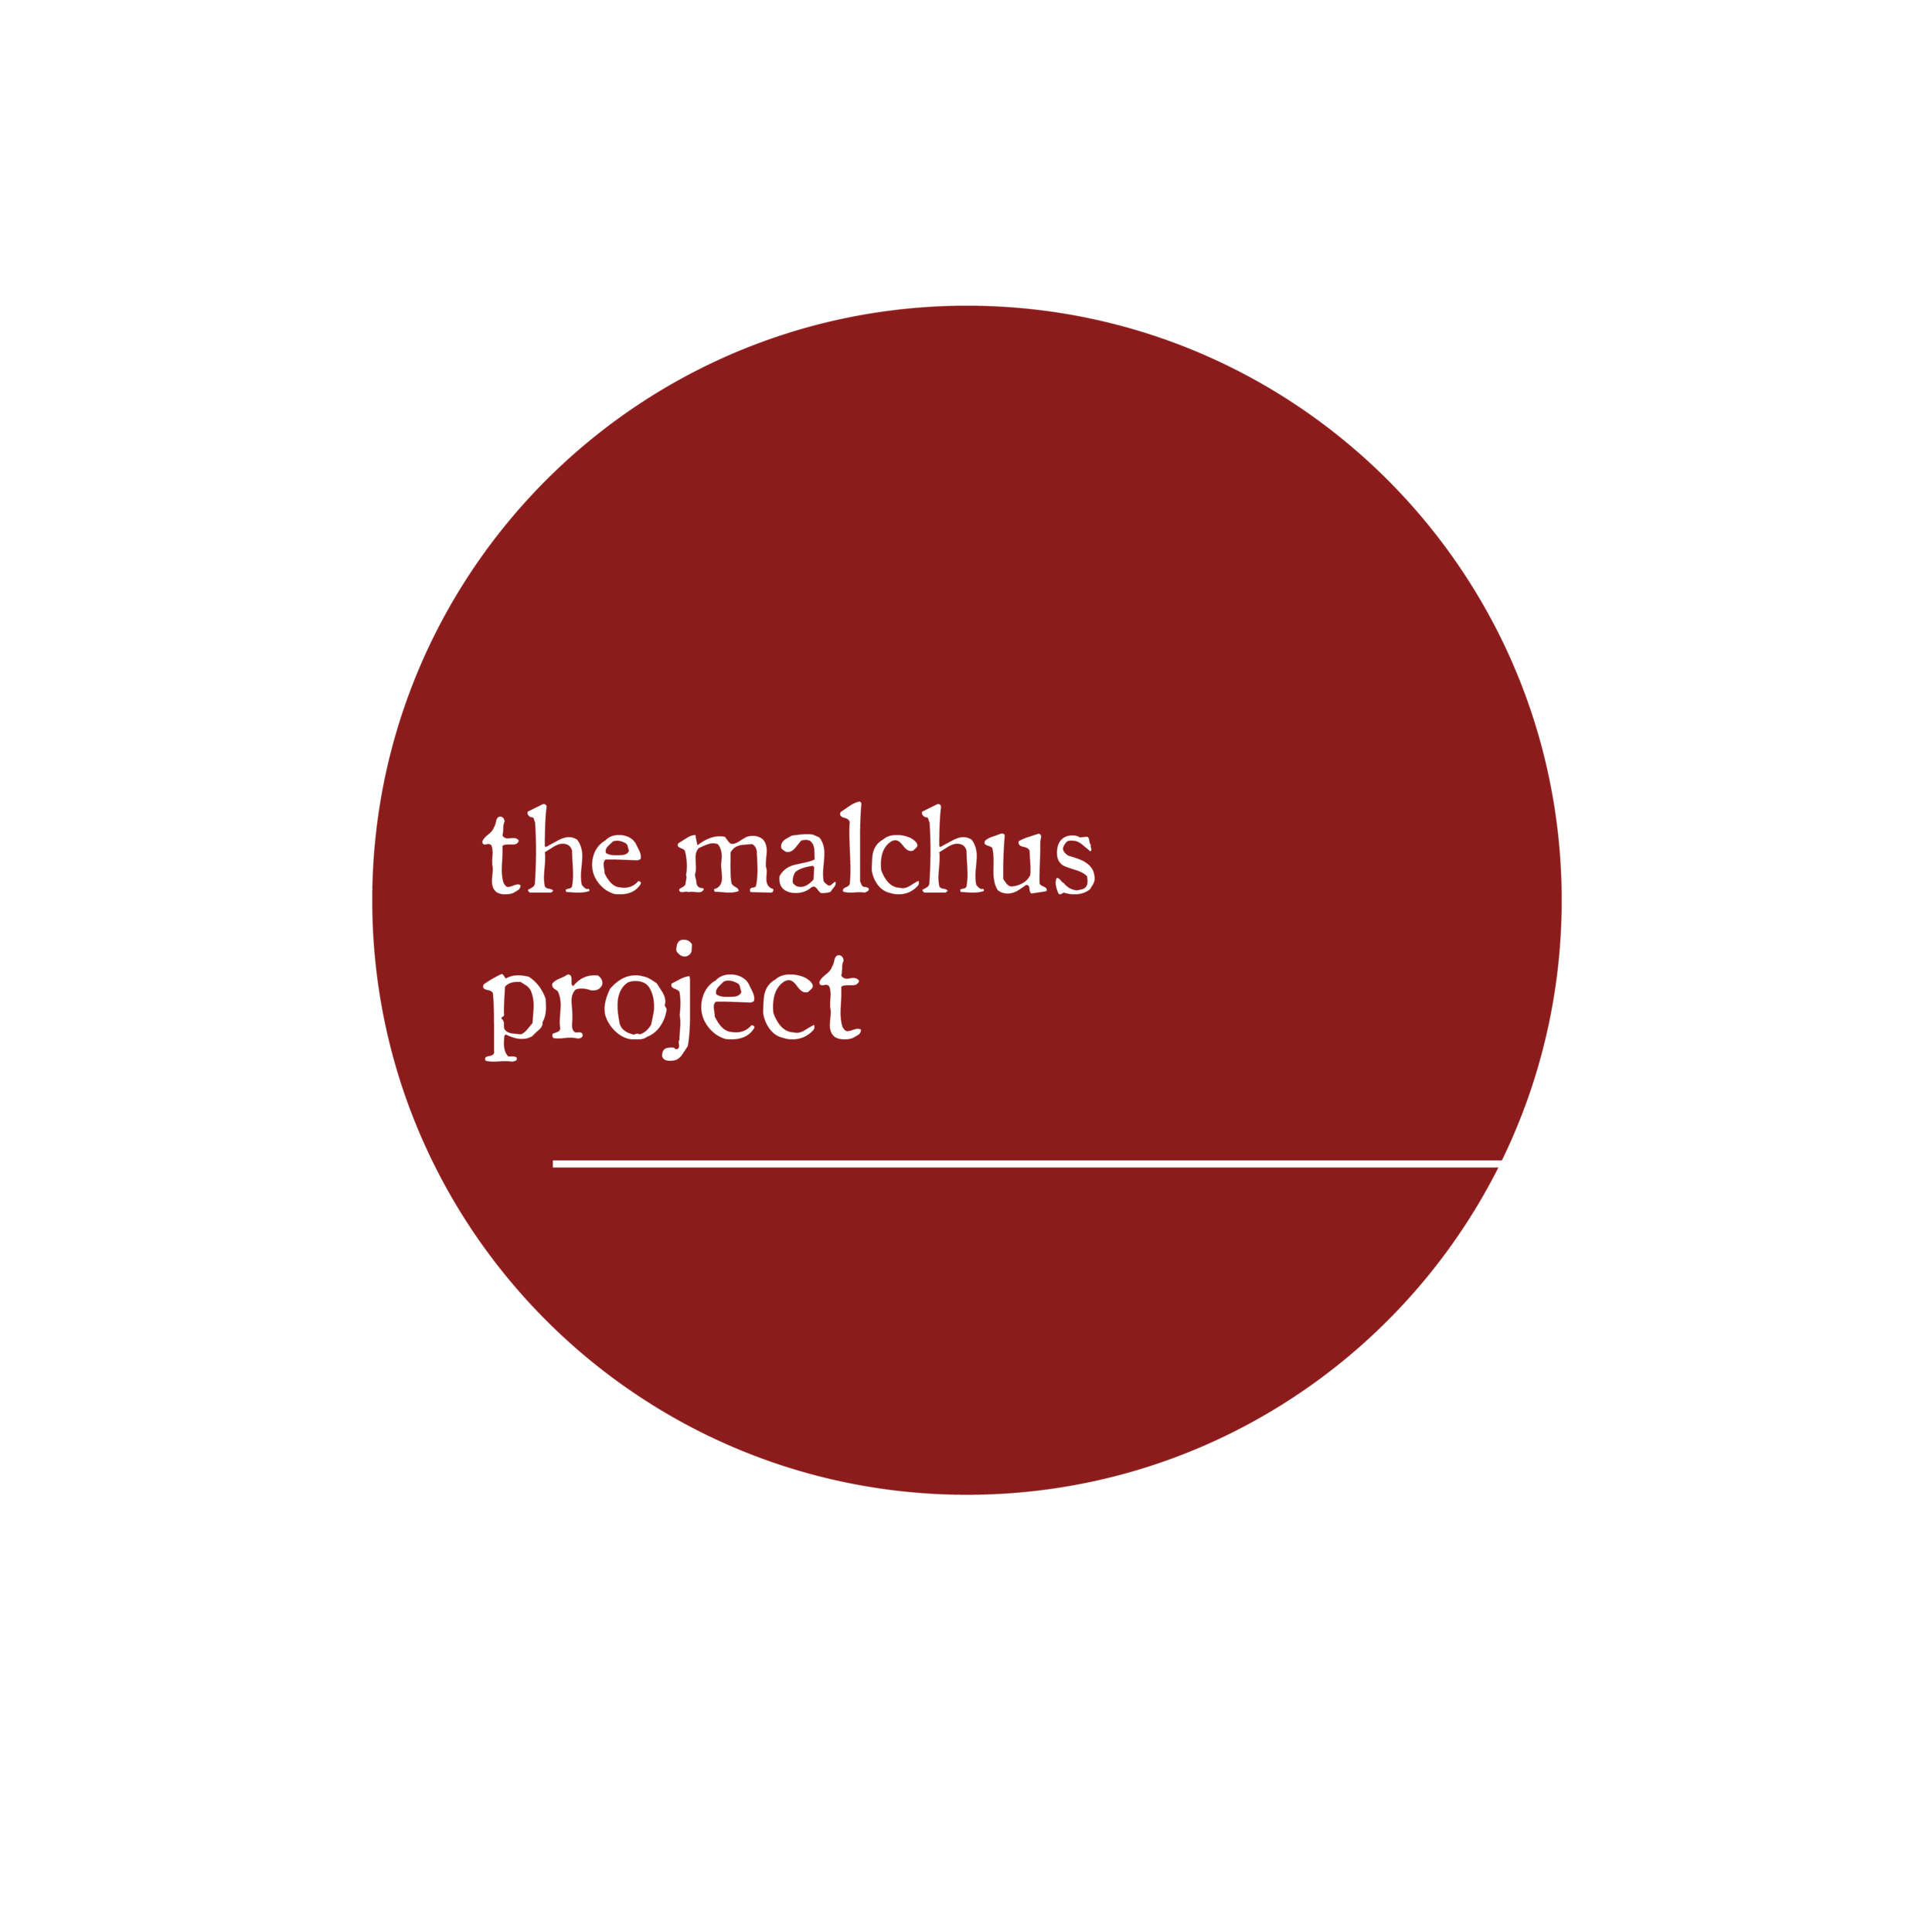 the_malchus_project_final_transparent-07.png